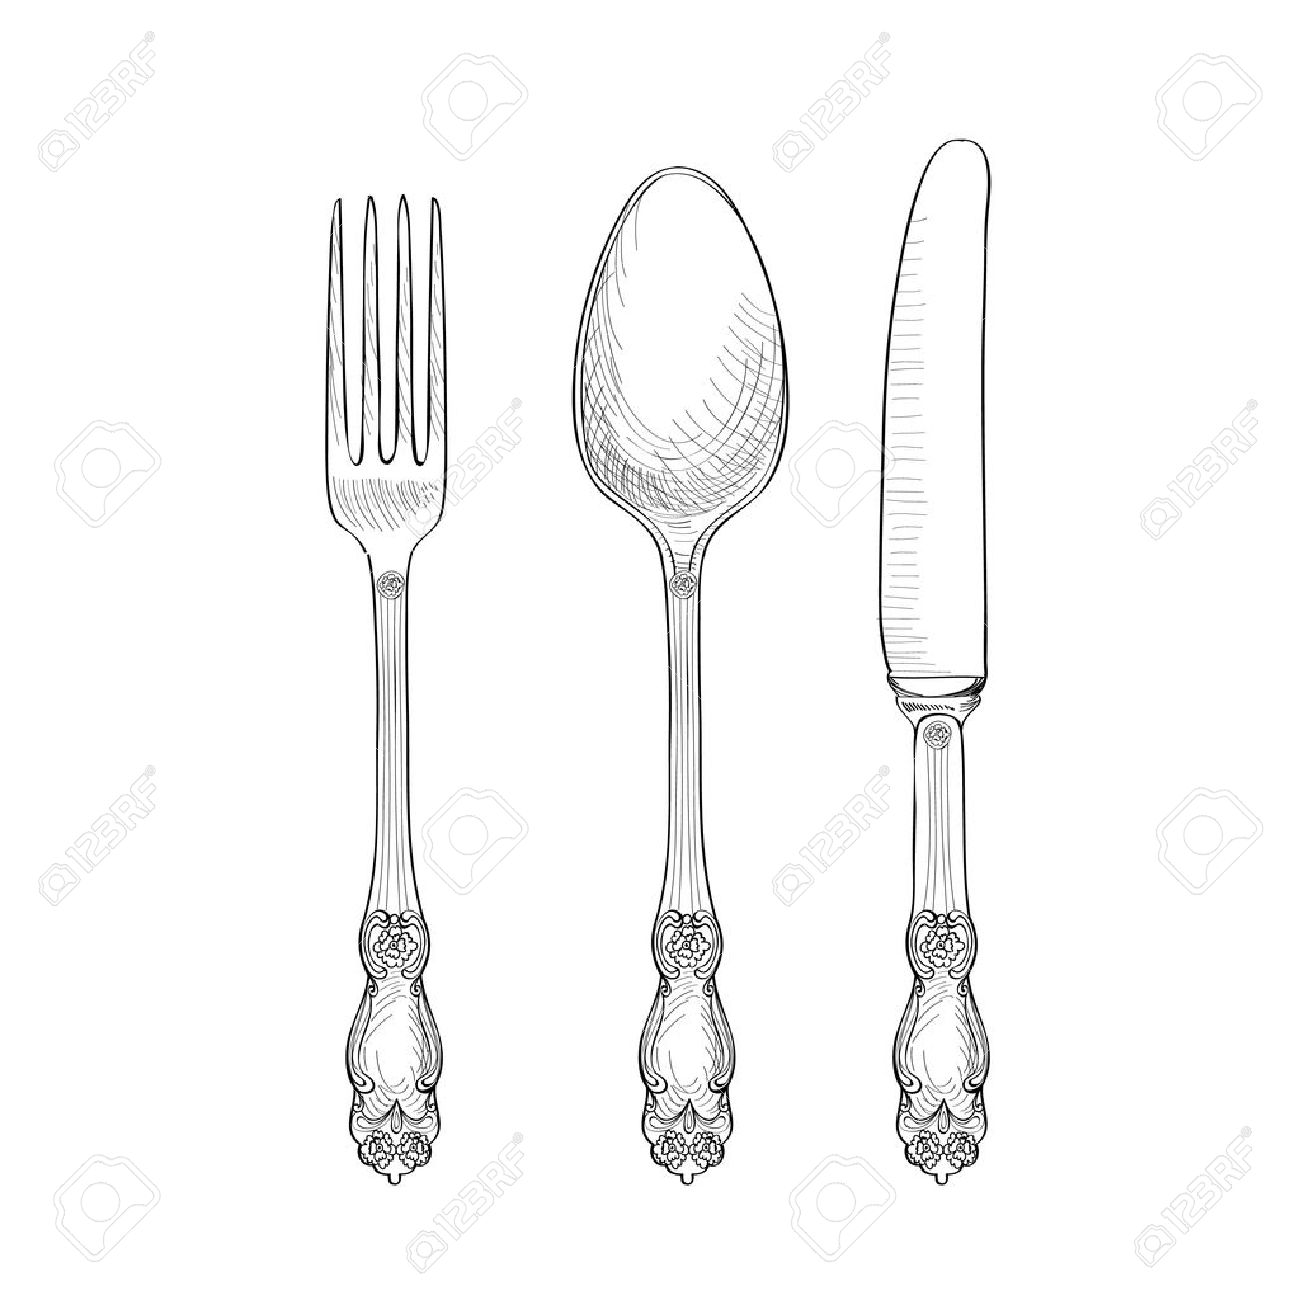 Fork, Knife, Spoon sketch set. Cutlery hand drawing collection. Catering engraved vector illustration. Restraunt  symbol Stock Vector - 53120321